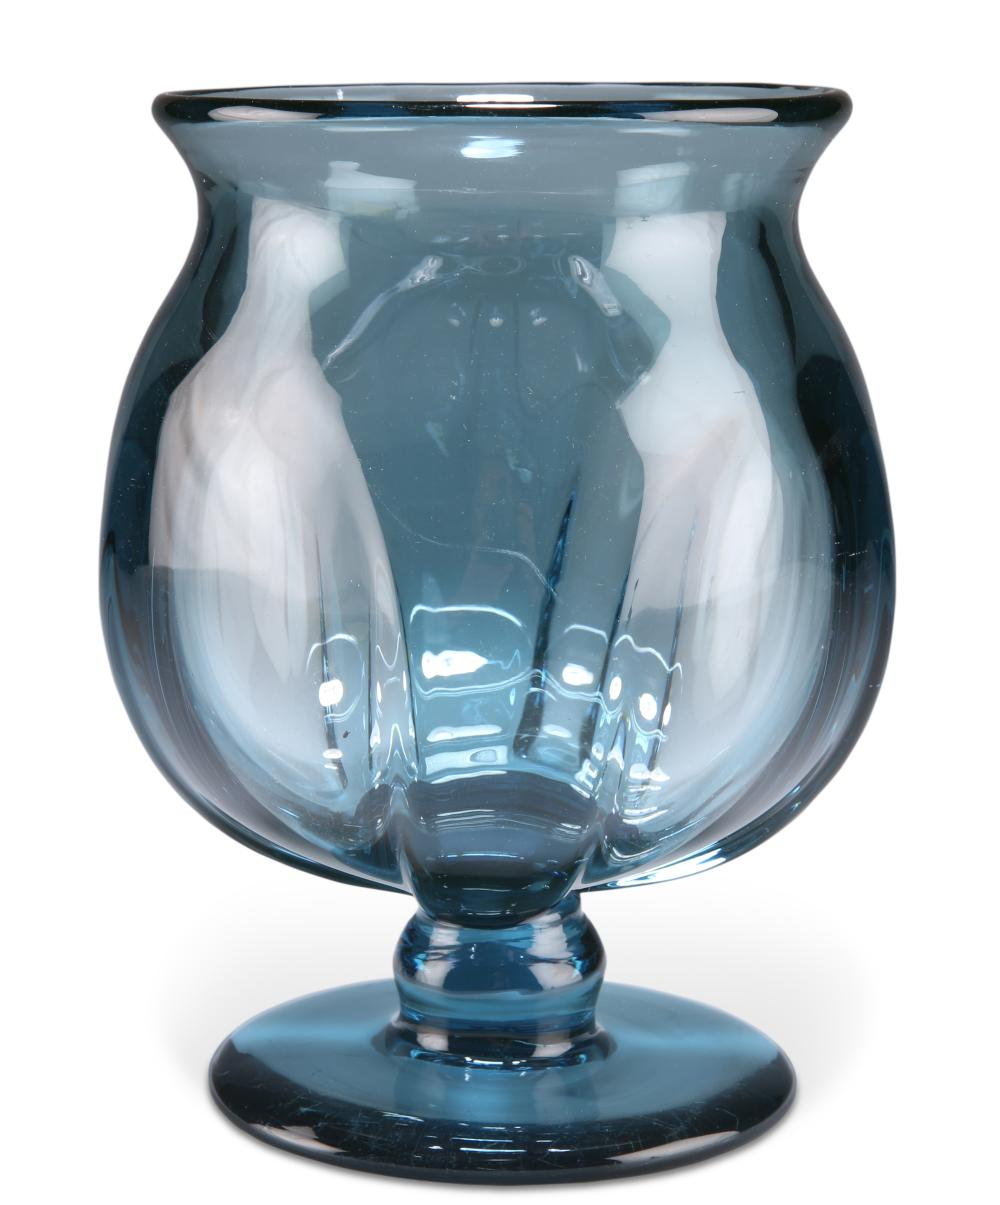 A KOSTA BLUE GLASS VASE, CIRCA 1930, designed by Elis Bergh, the dimpled bo